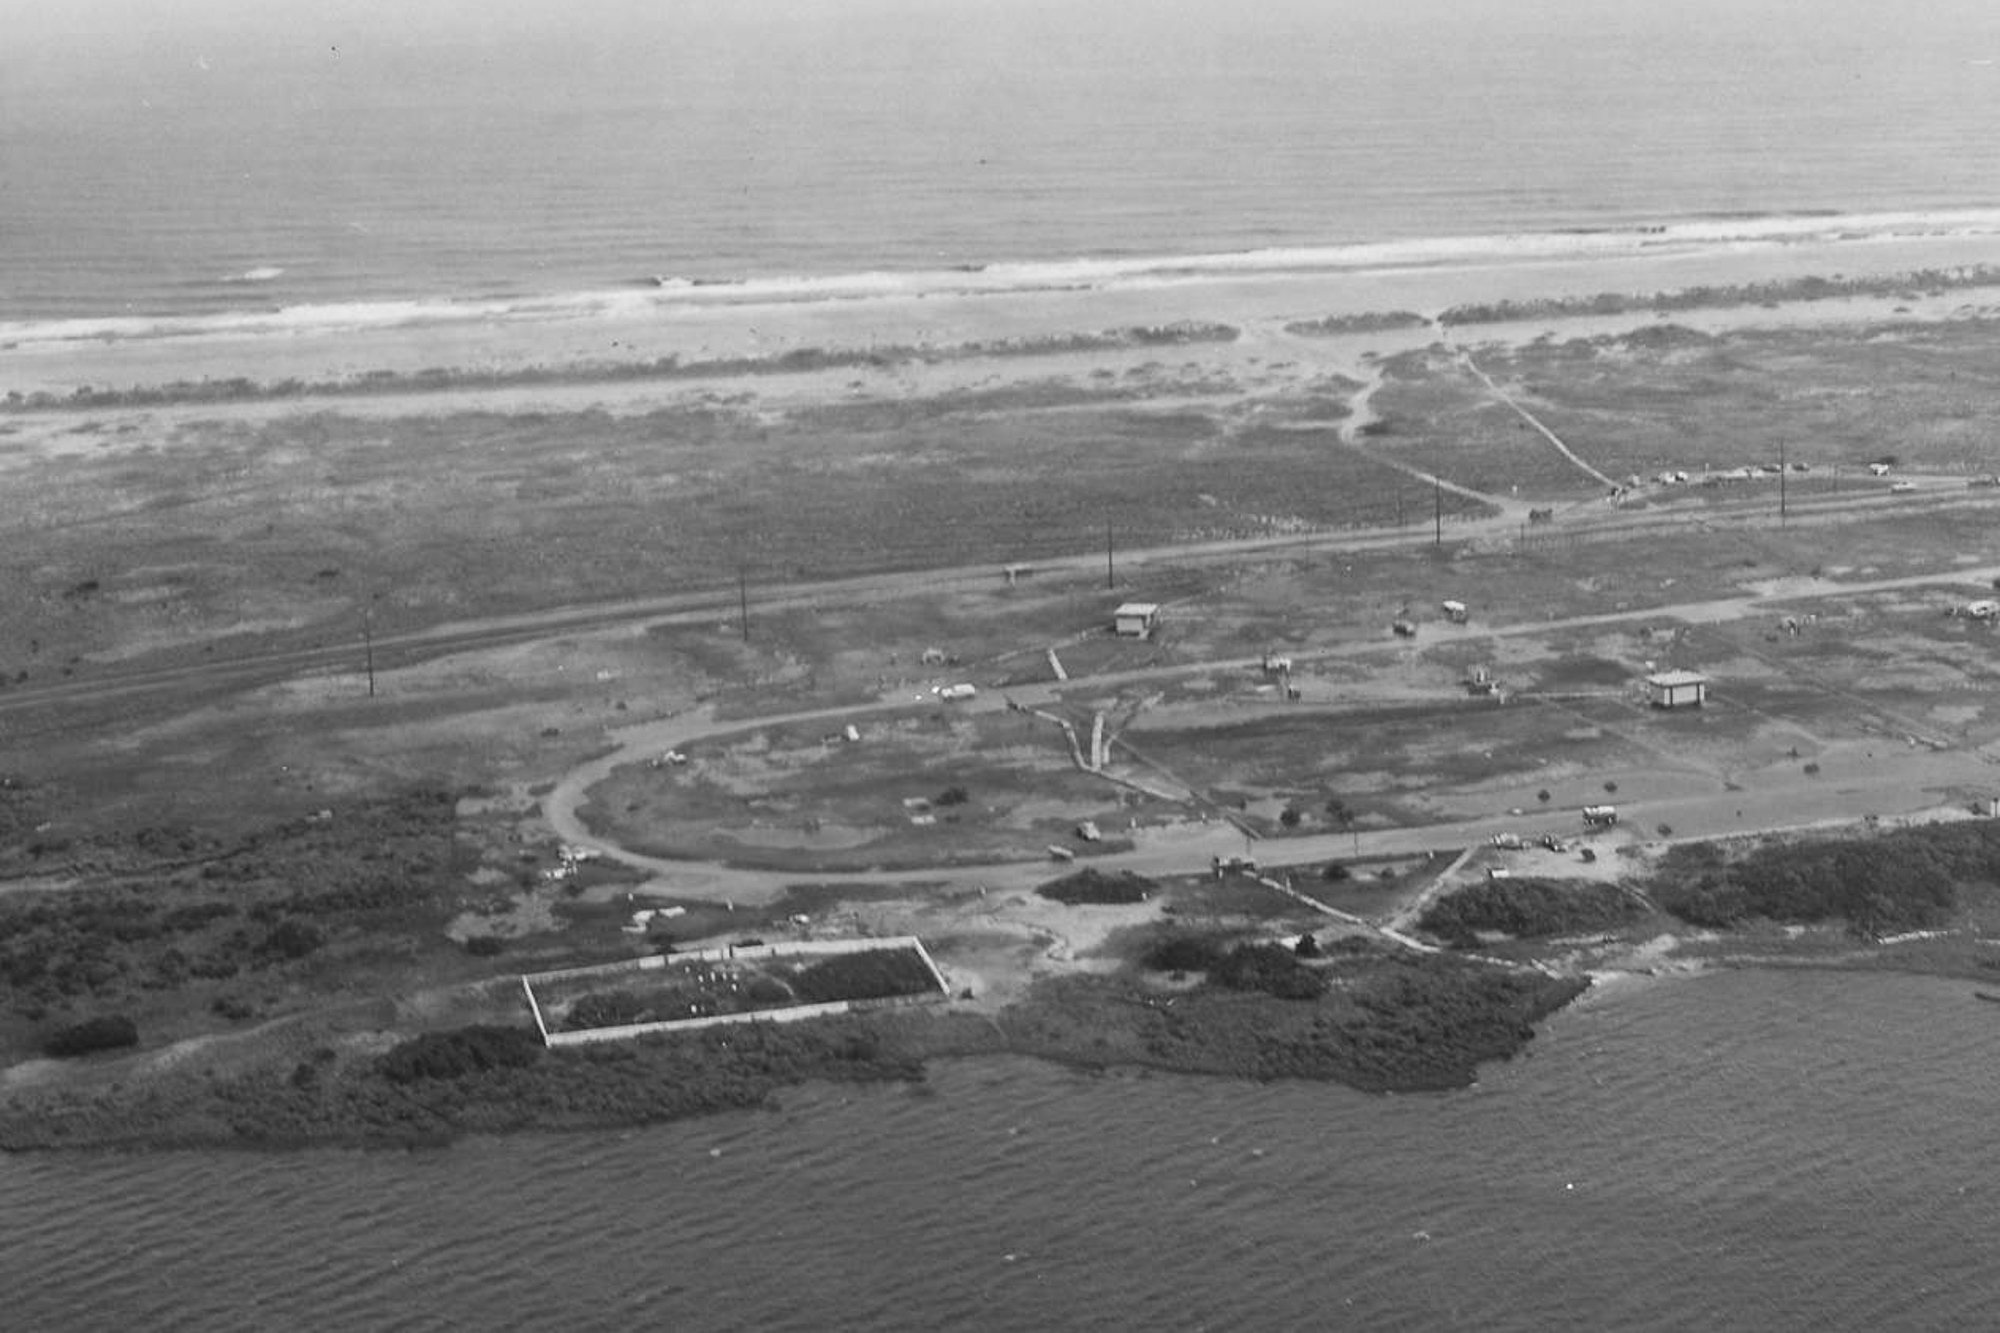 The Salvo Community Cemetery in 1970, with a complete fence and a shoreline with vegetation.  Courtesy of National Park Service, Cape Hatteras National Seashore